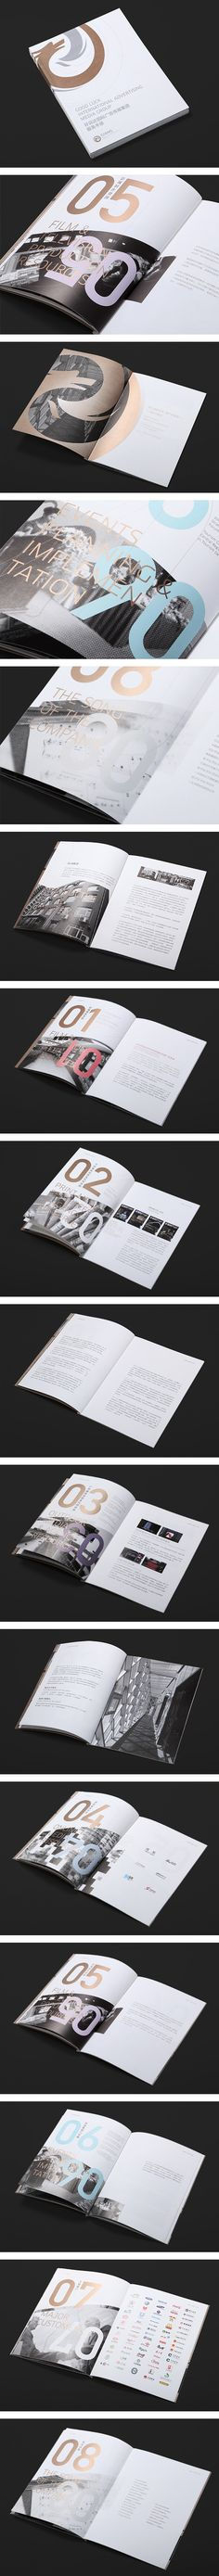 GIAMG service manual by ONE & ONE DESIGN